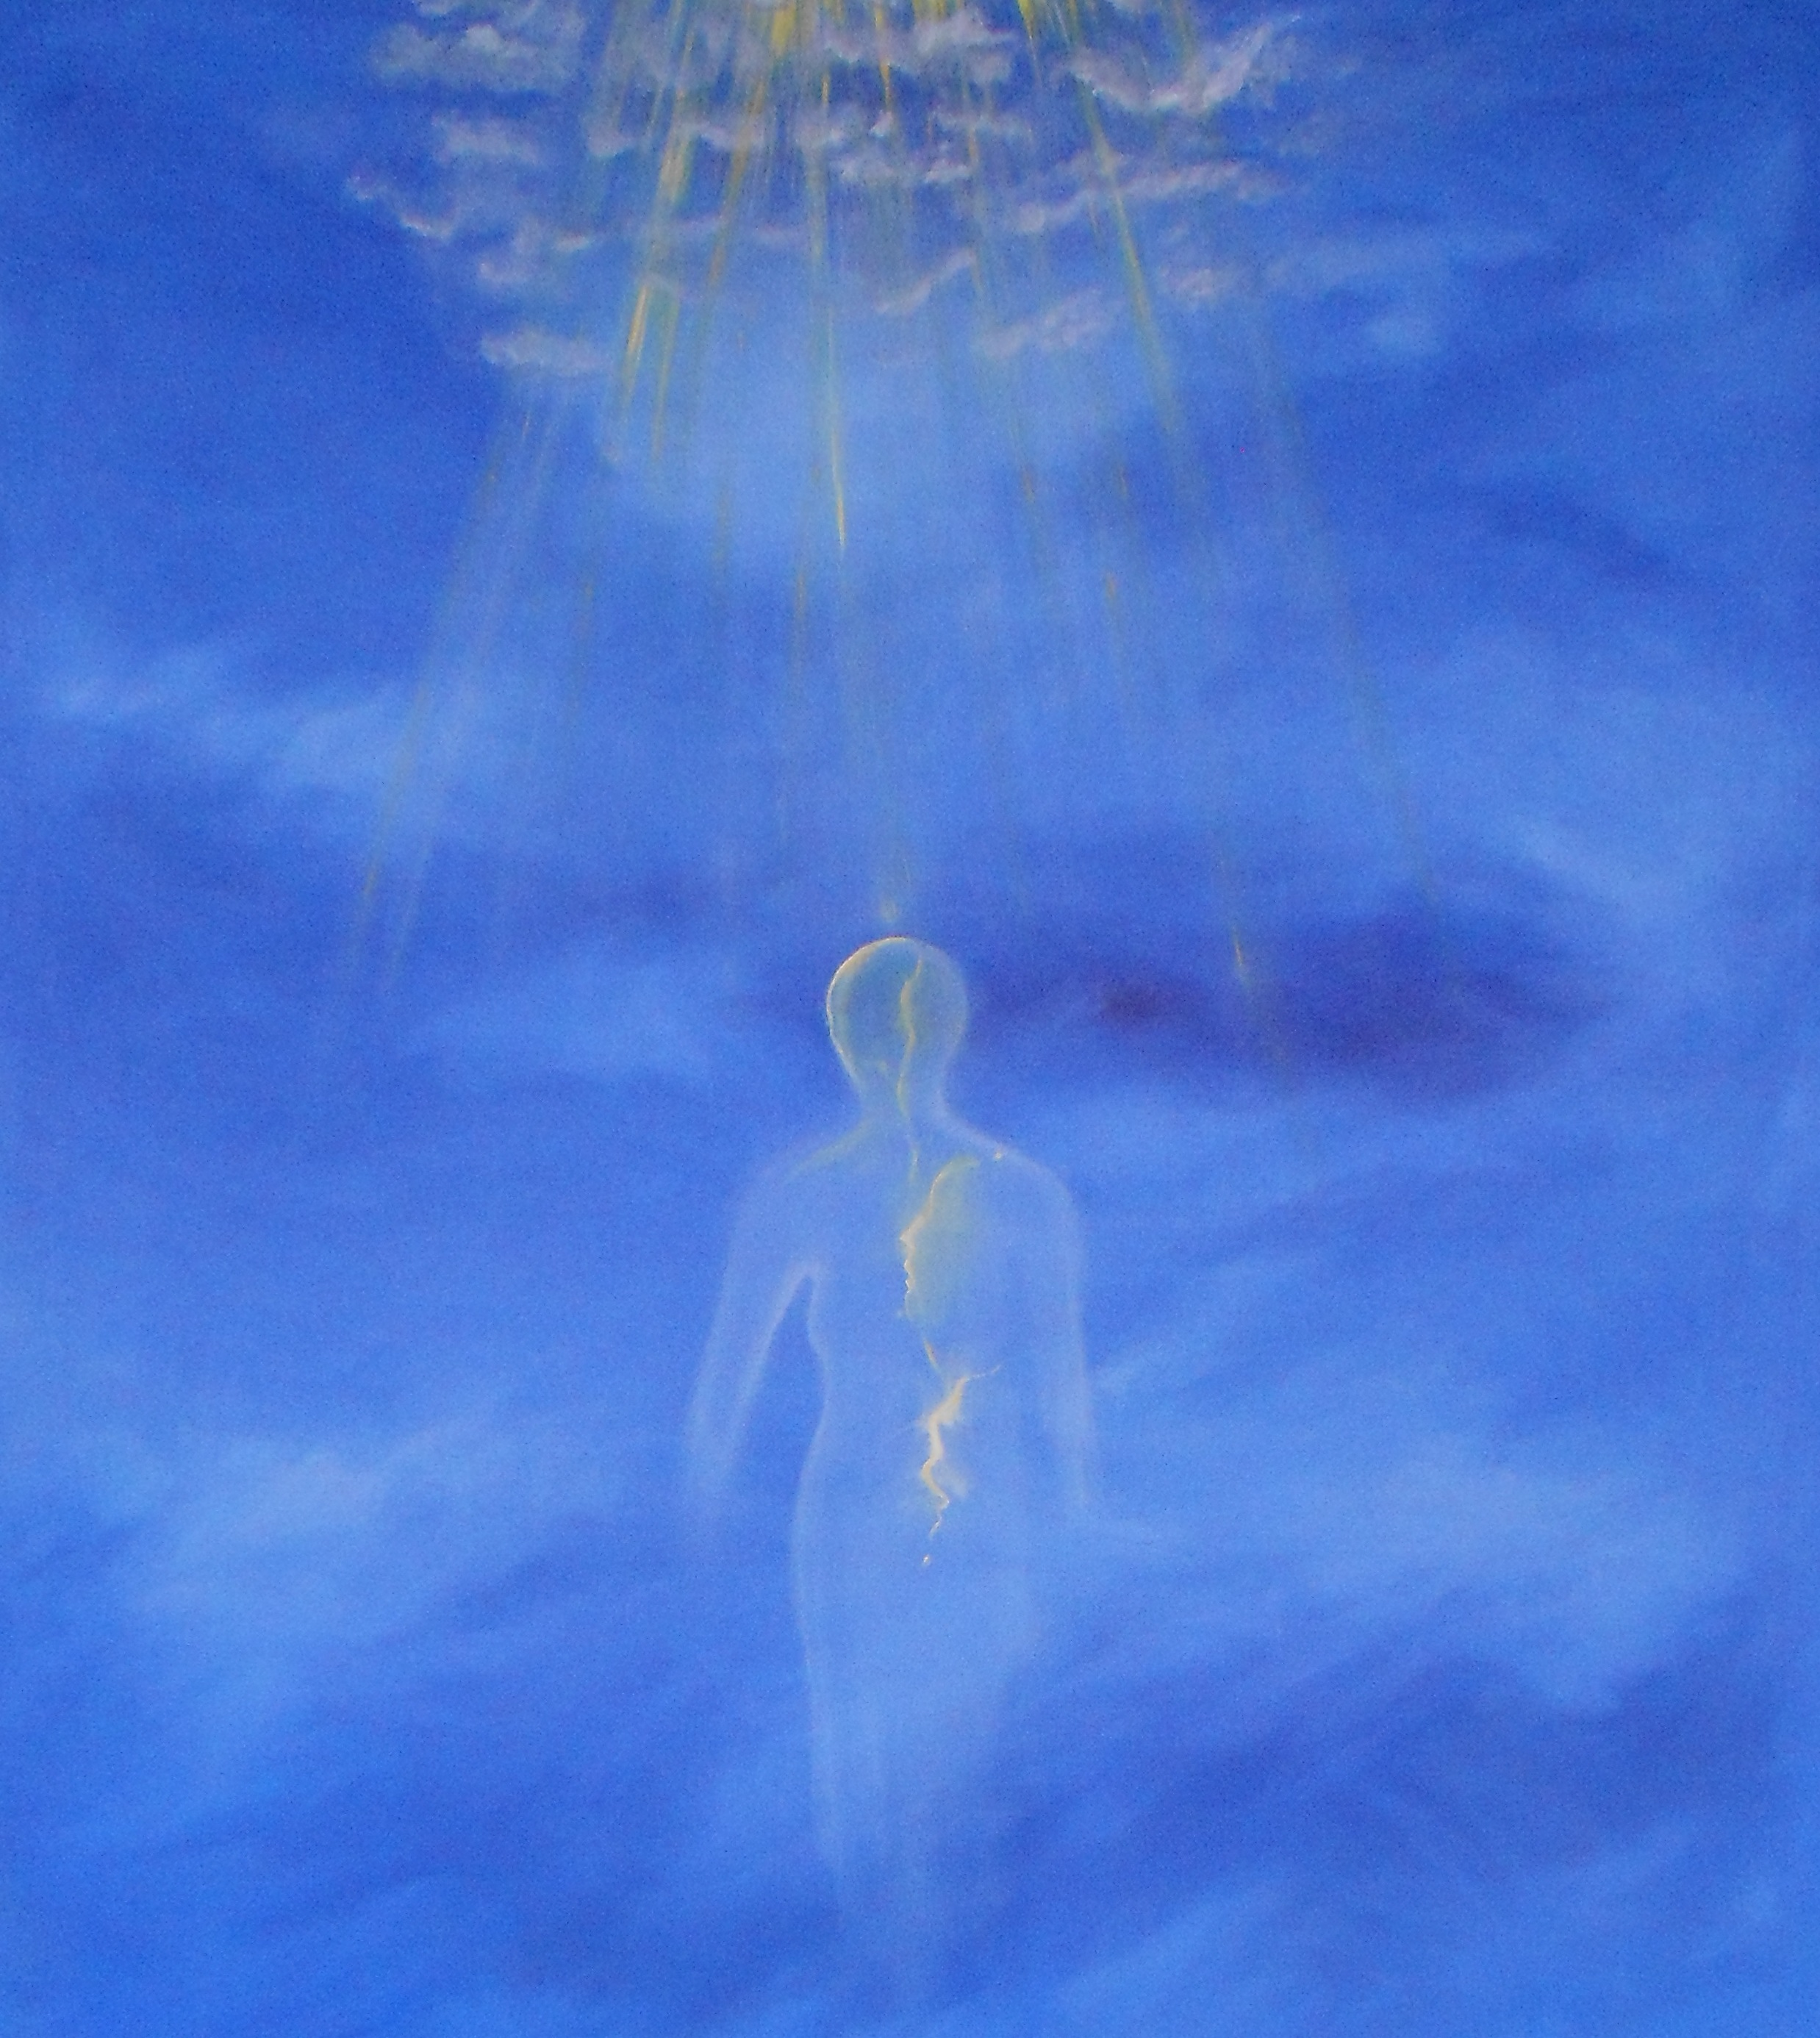 oil on canvas/olio su tela, 120 x 210 cm, 2014